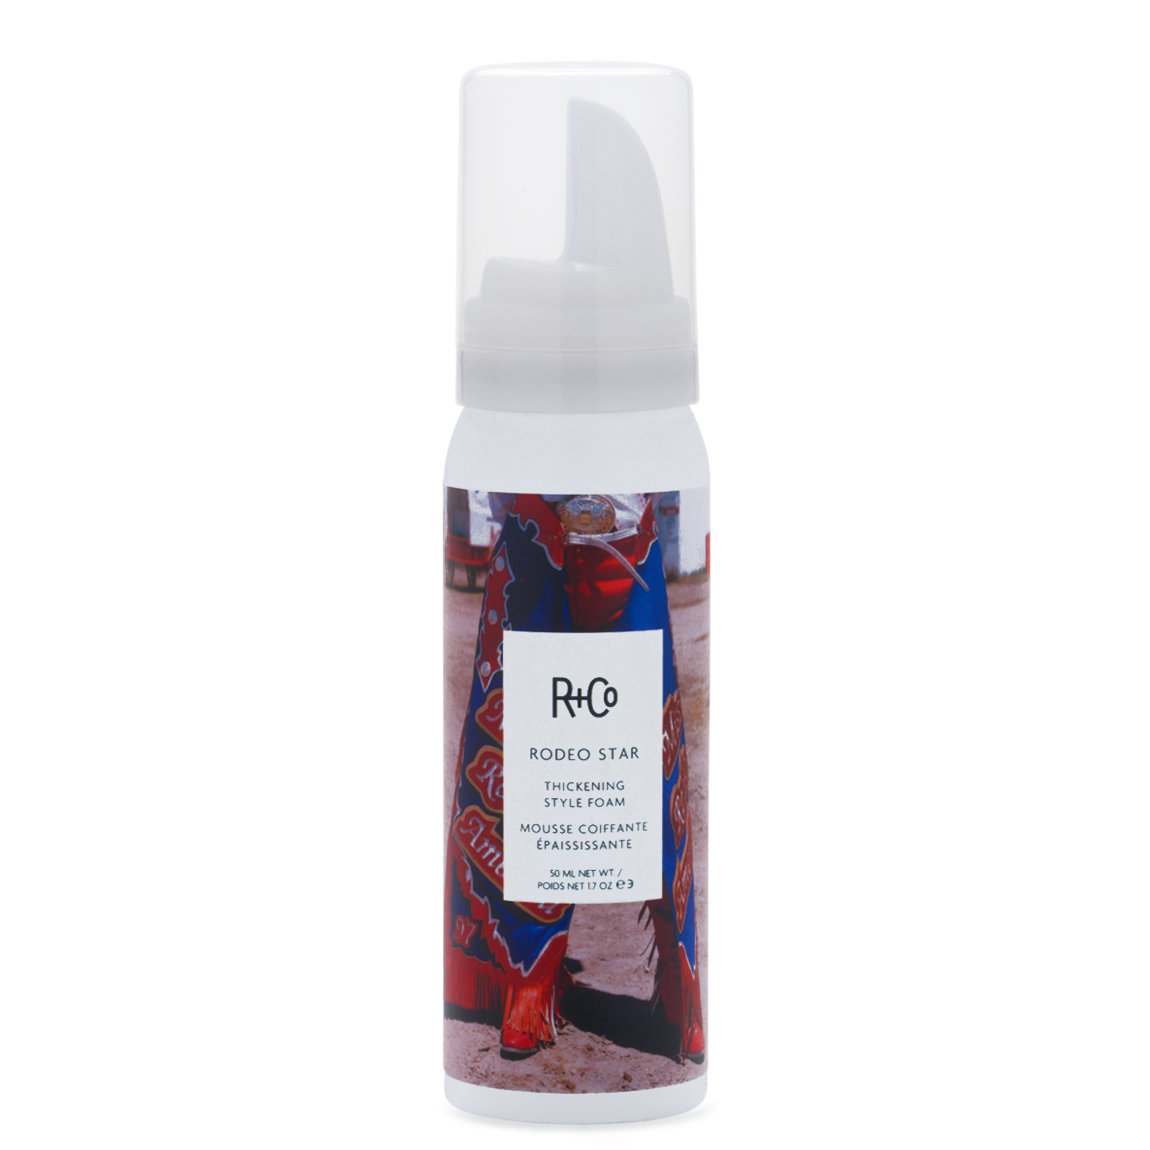 R+Co Rodeo Star Thickening Style Foam 1.7 fl oz product swatch.